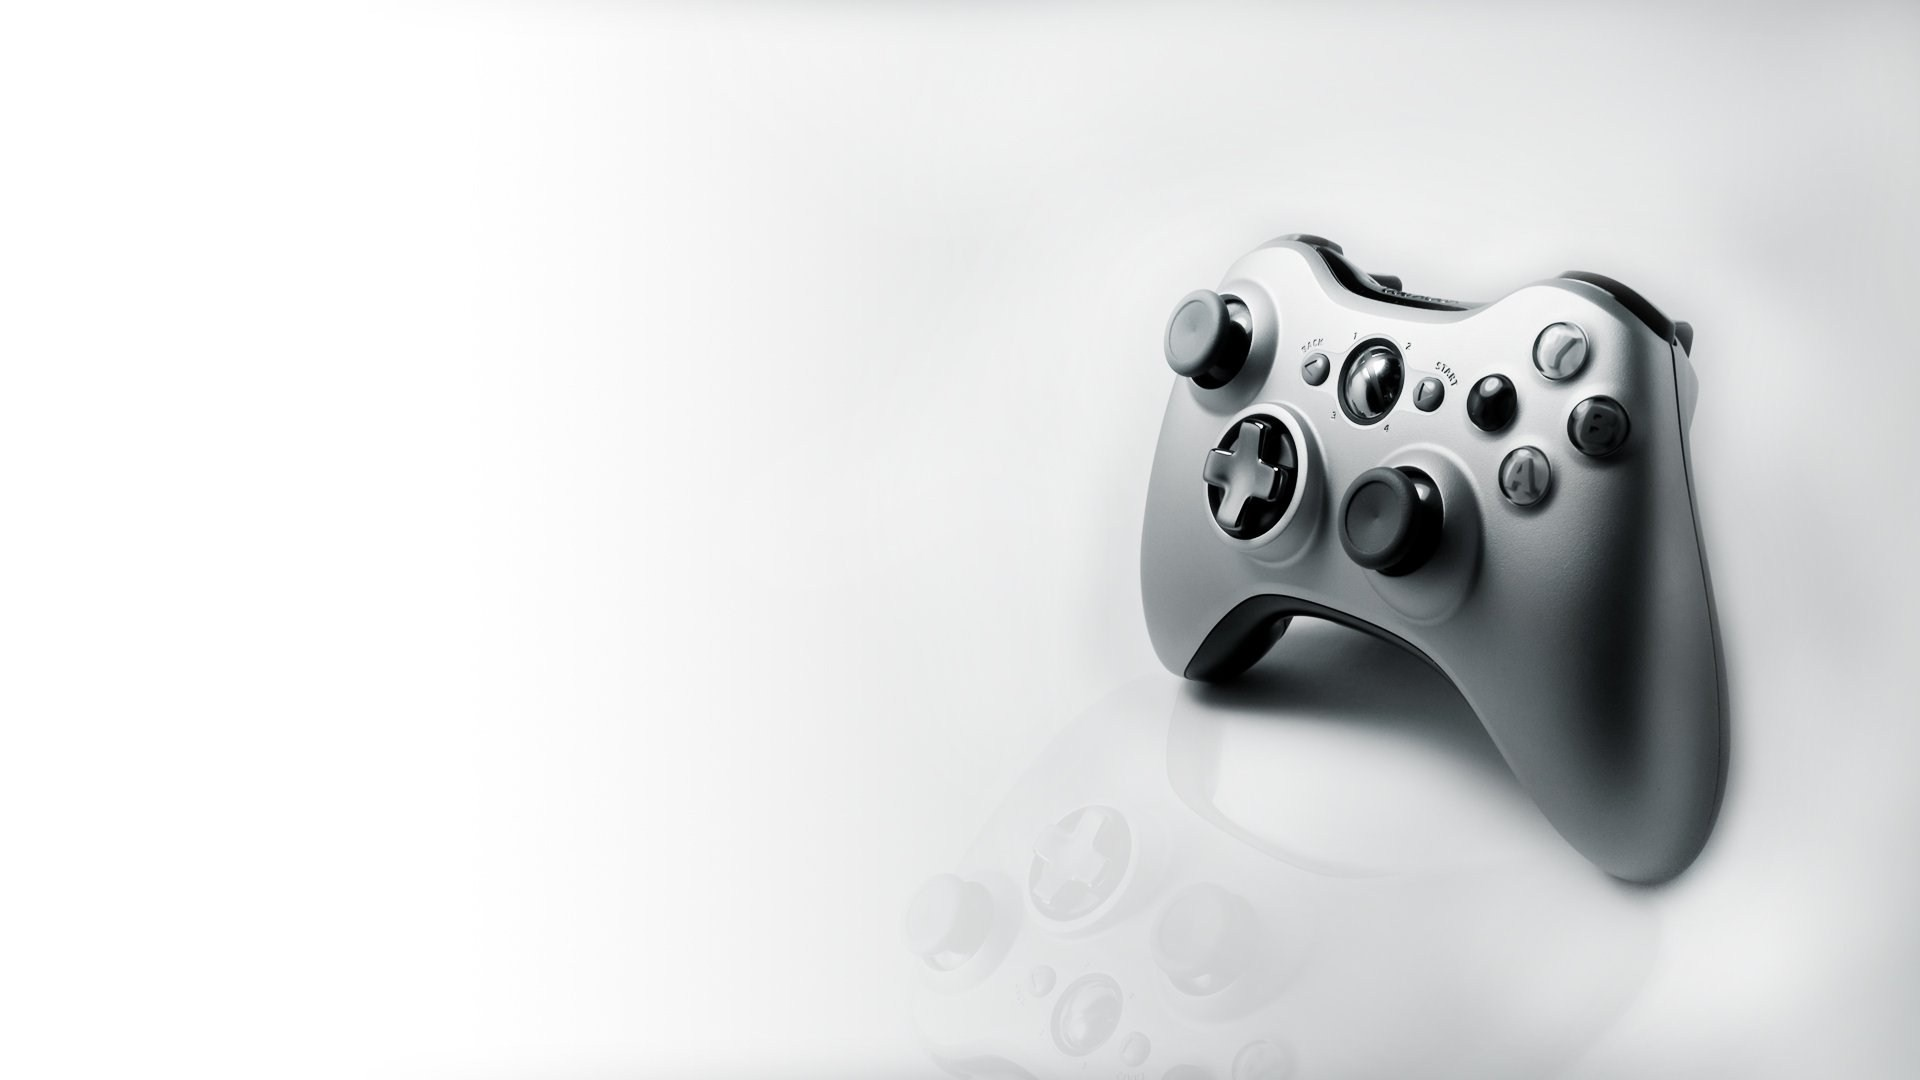 1920x1080 Xbox Controller Wallpaper Hd Displaying 11 Images For